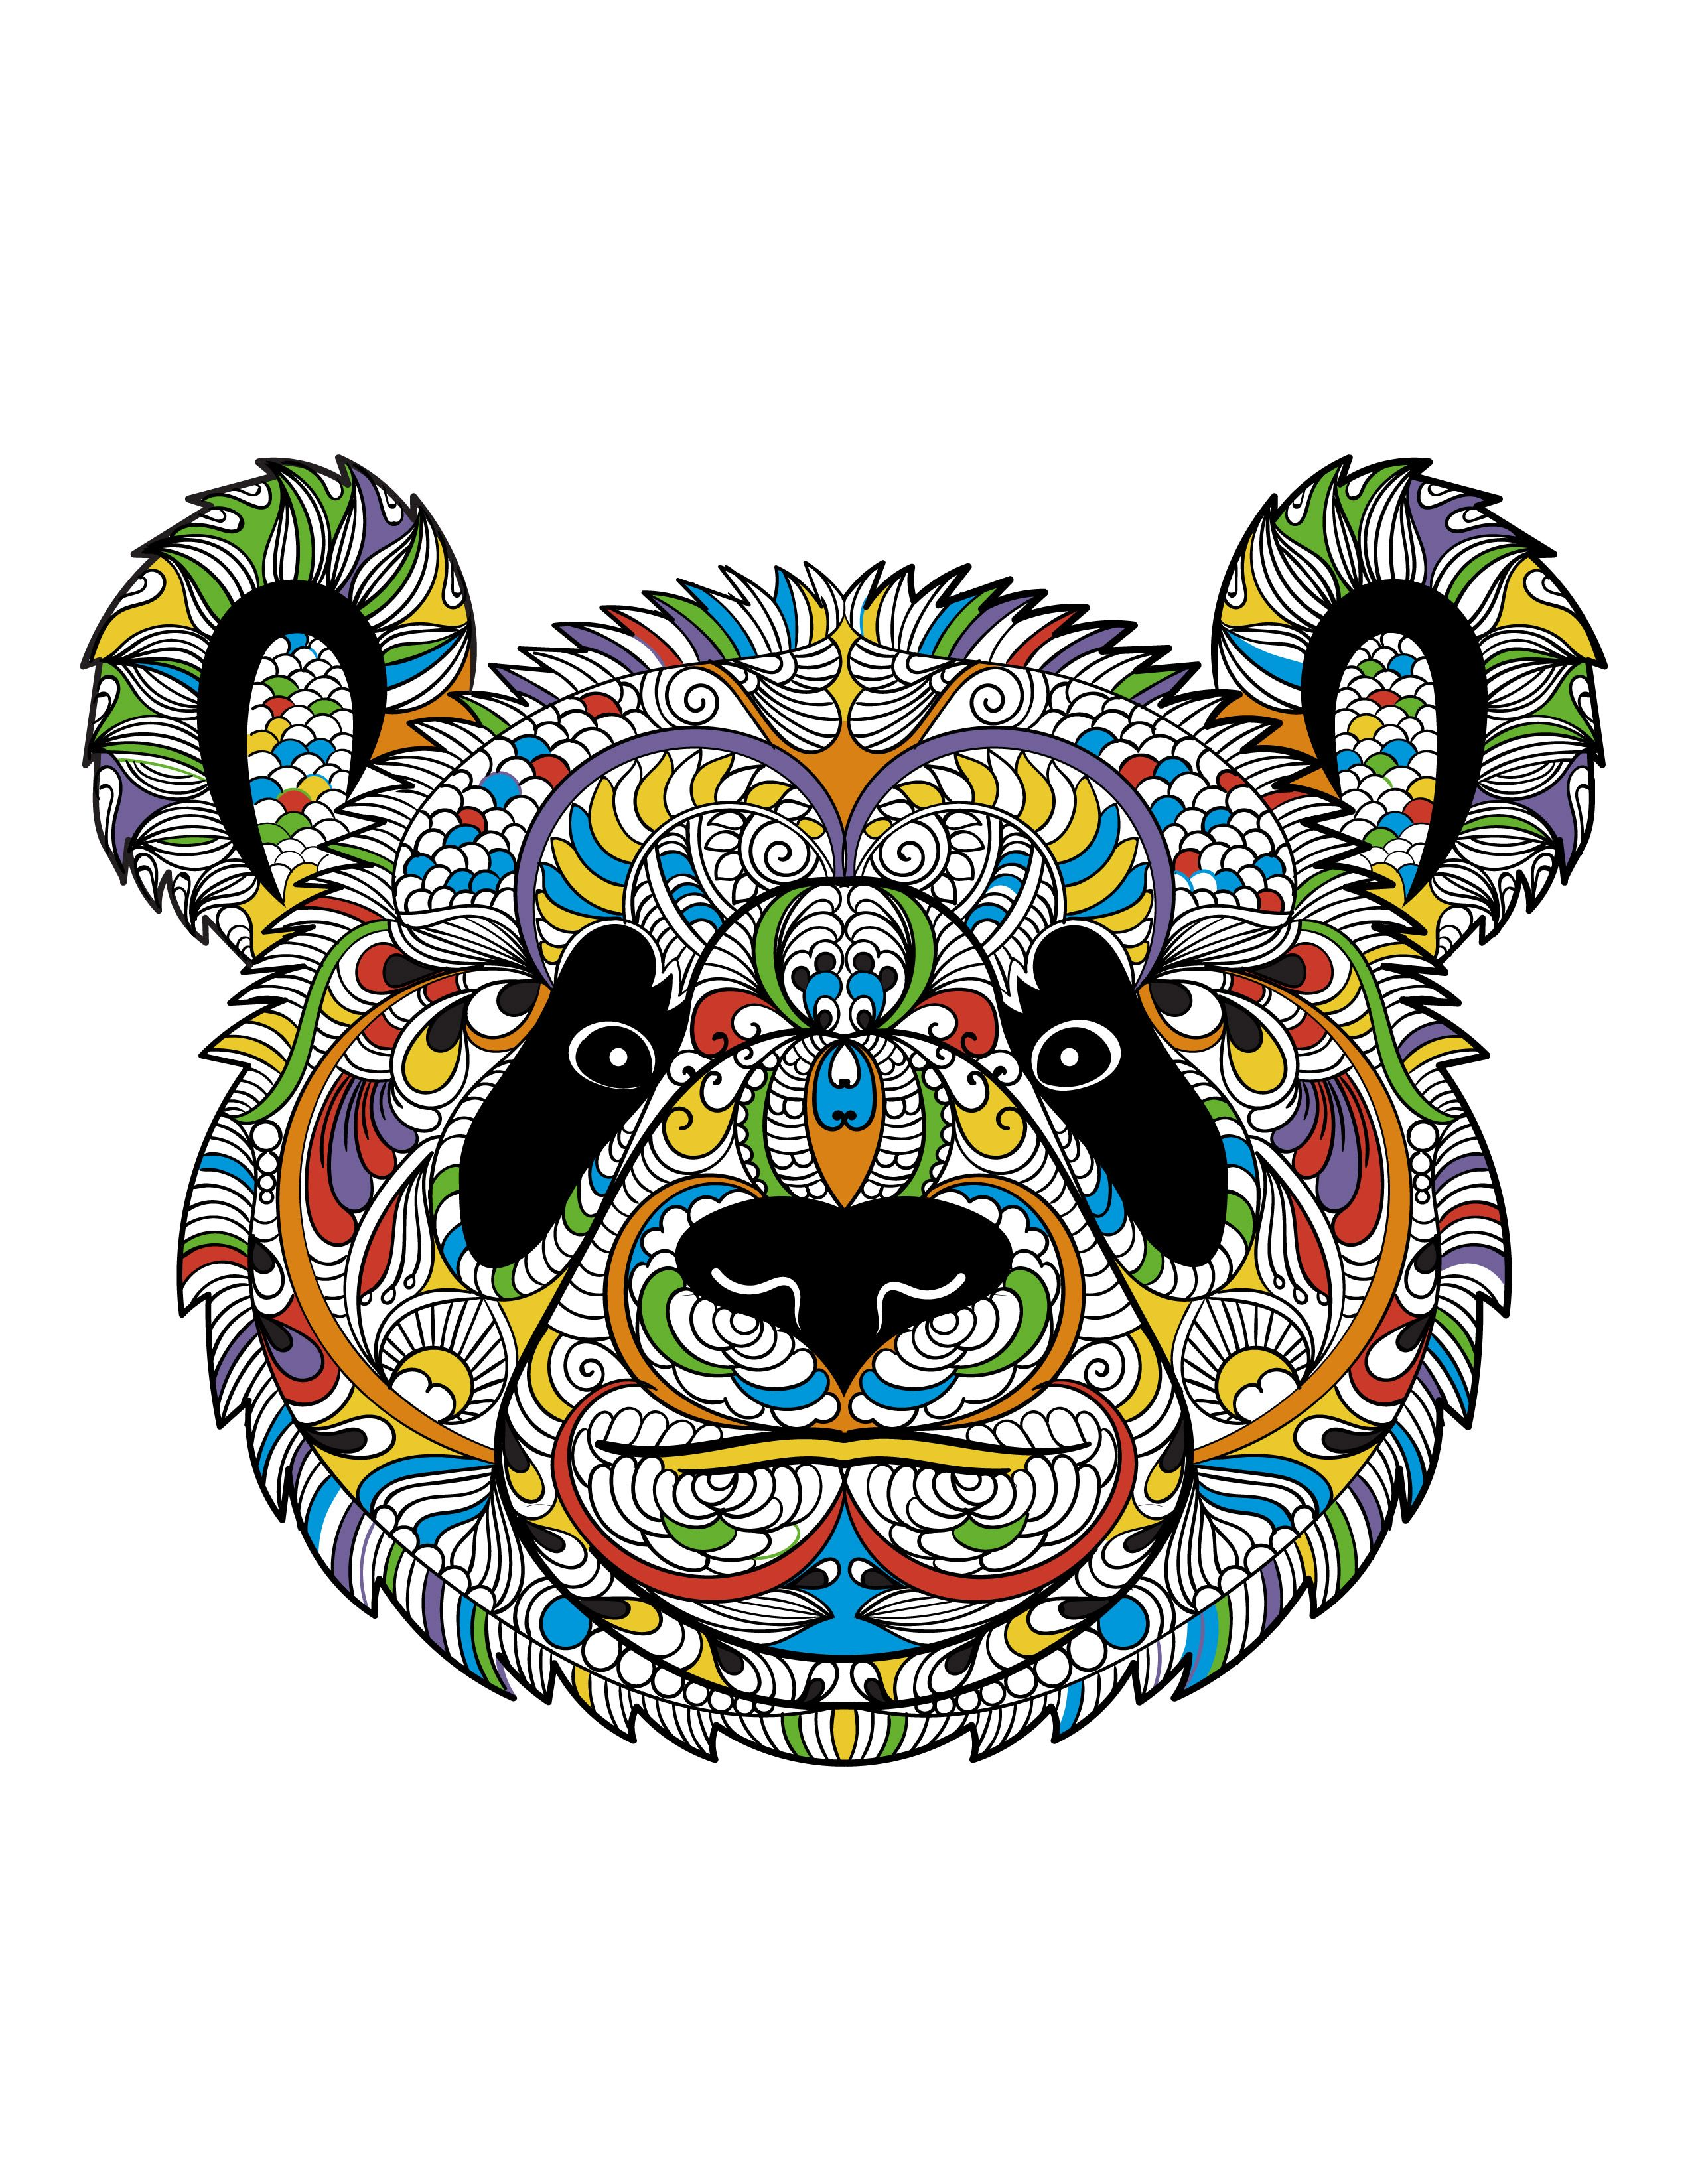 a panda from animals an coloring book adultcoloringbook